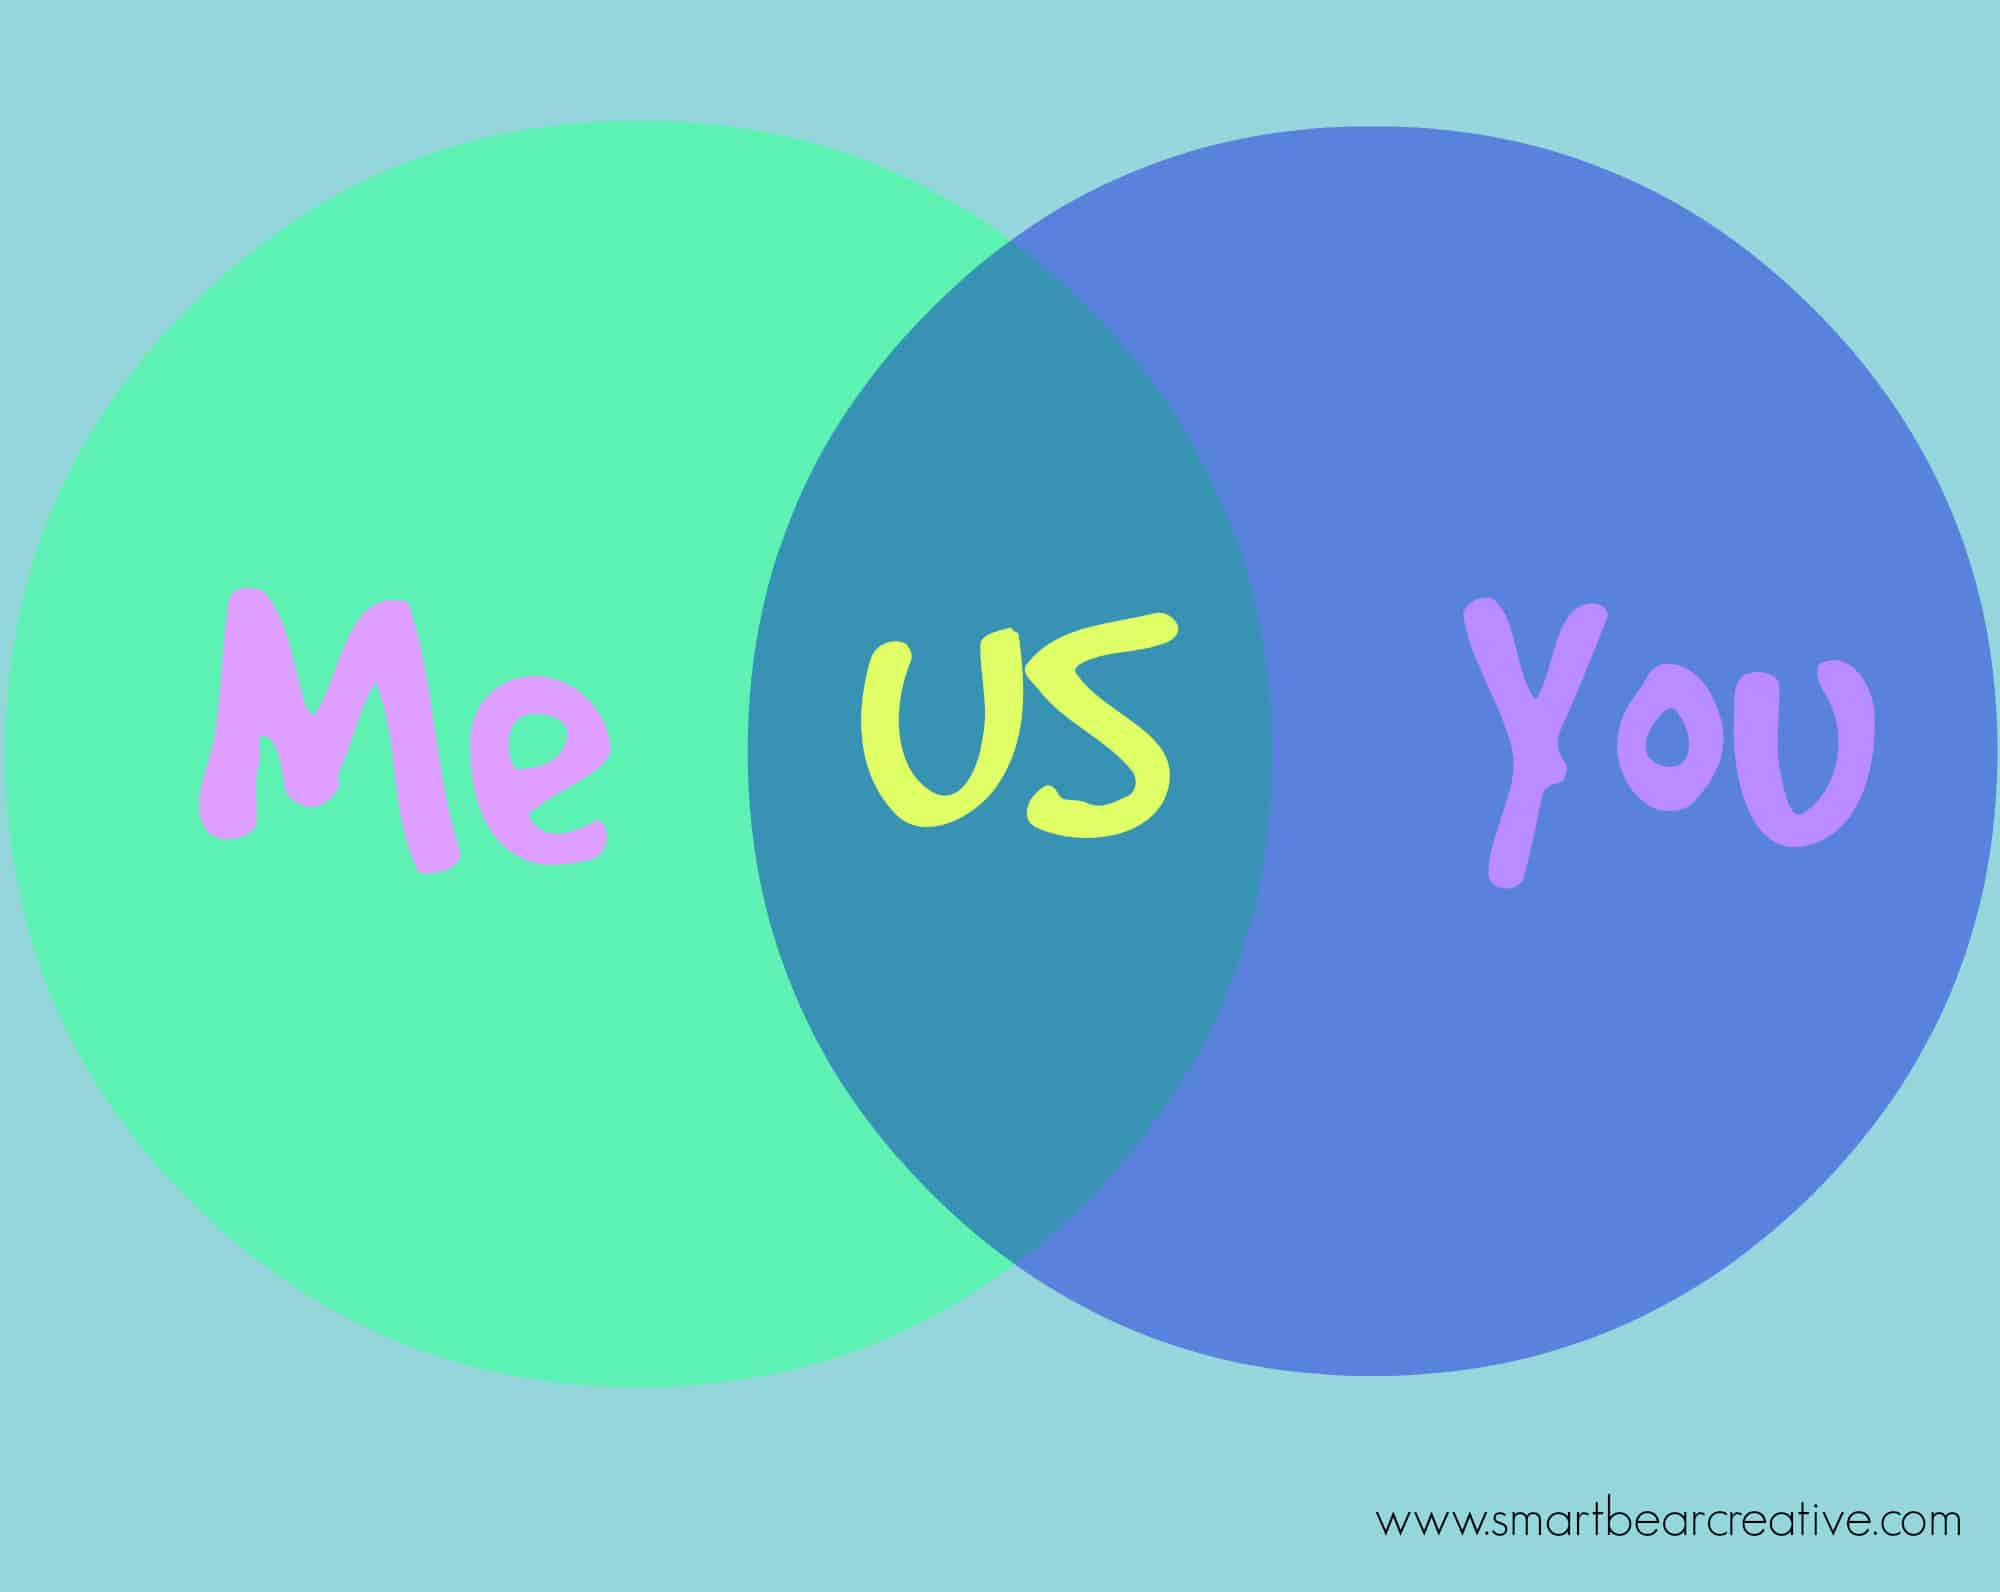 me + you = us